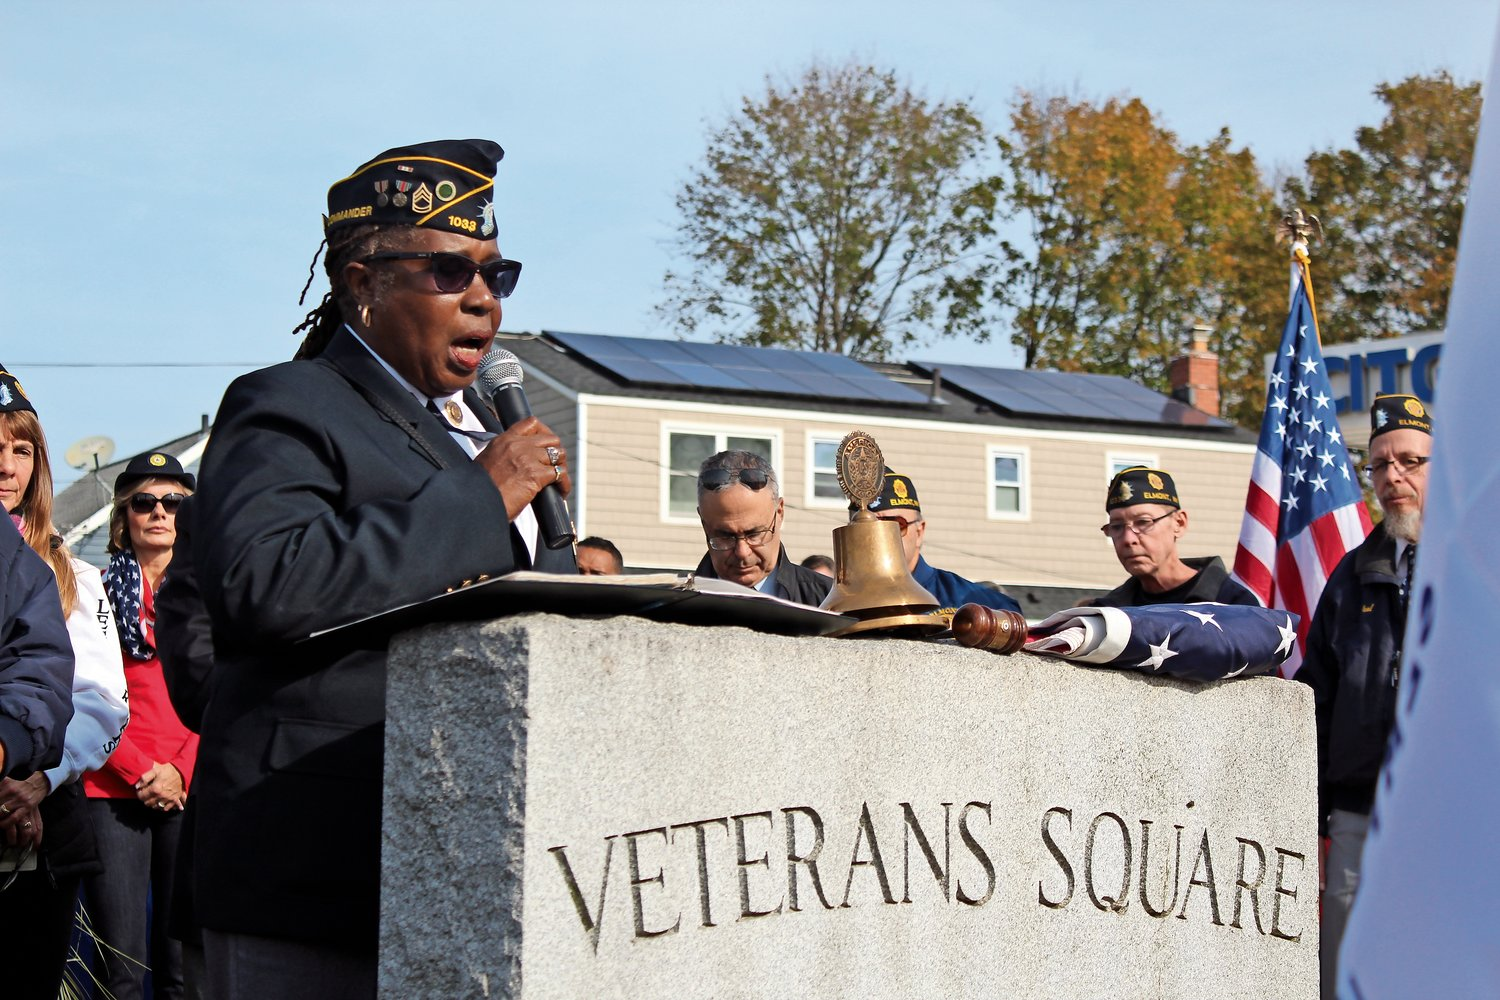 American Legion Commander Lecia Rodriques-Whyte led the Veterans Day ceremony in Elmont on Monday.